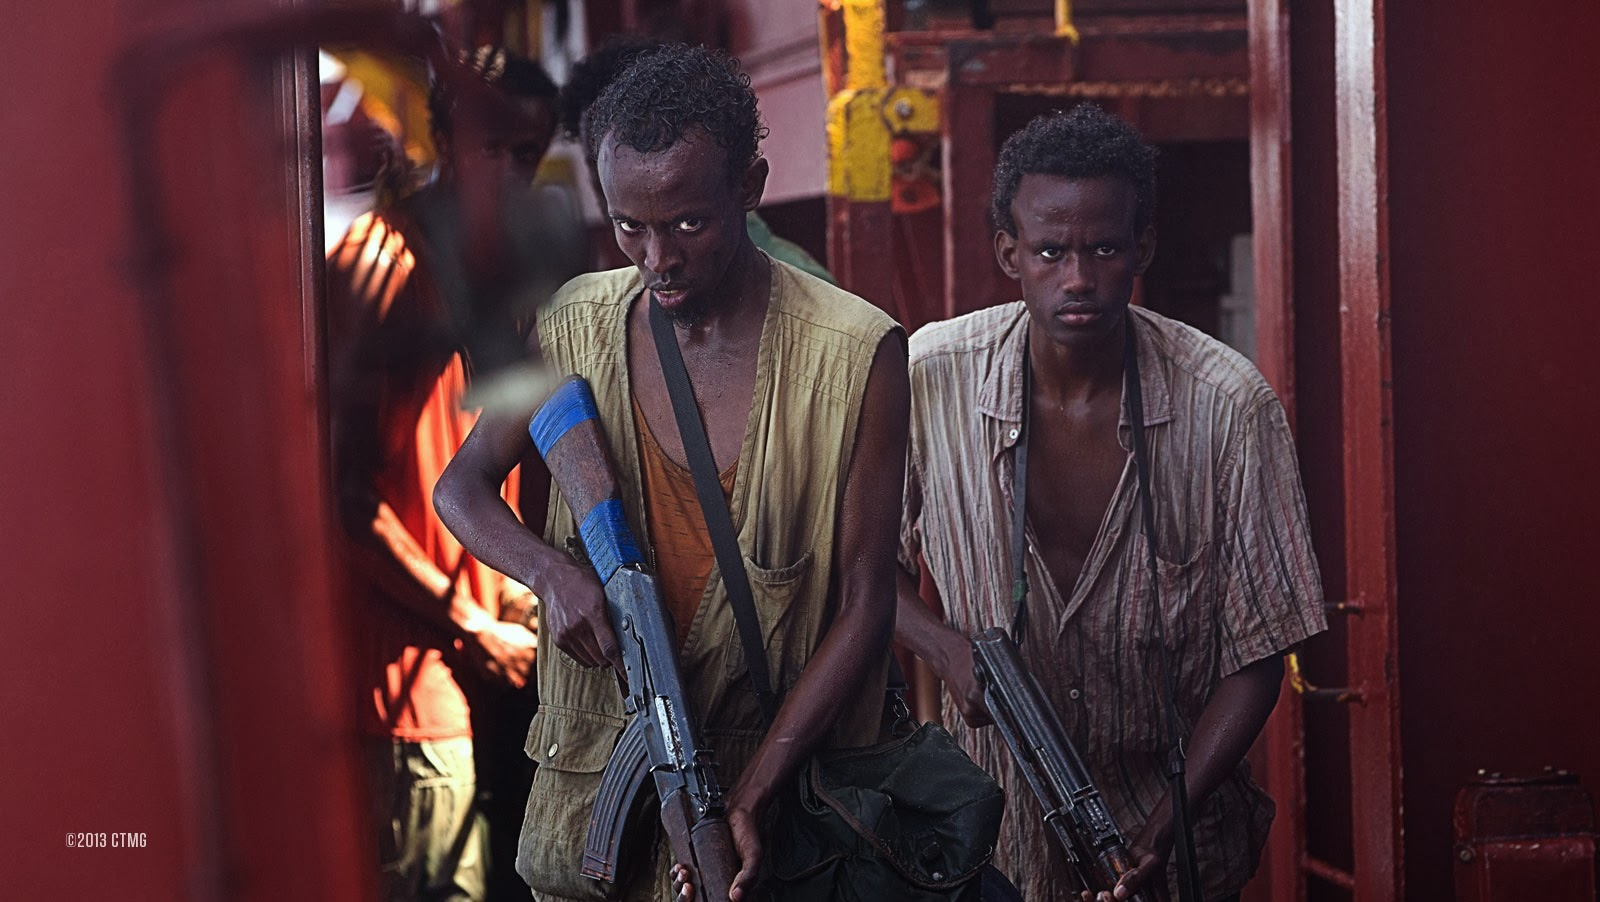 Barkad Abdi in Captain Phillips